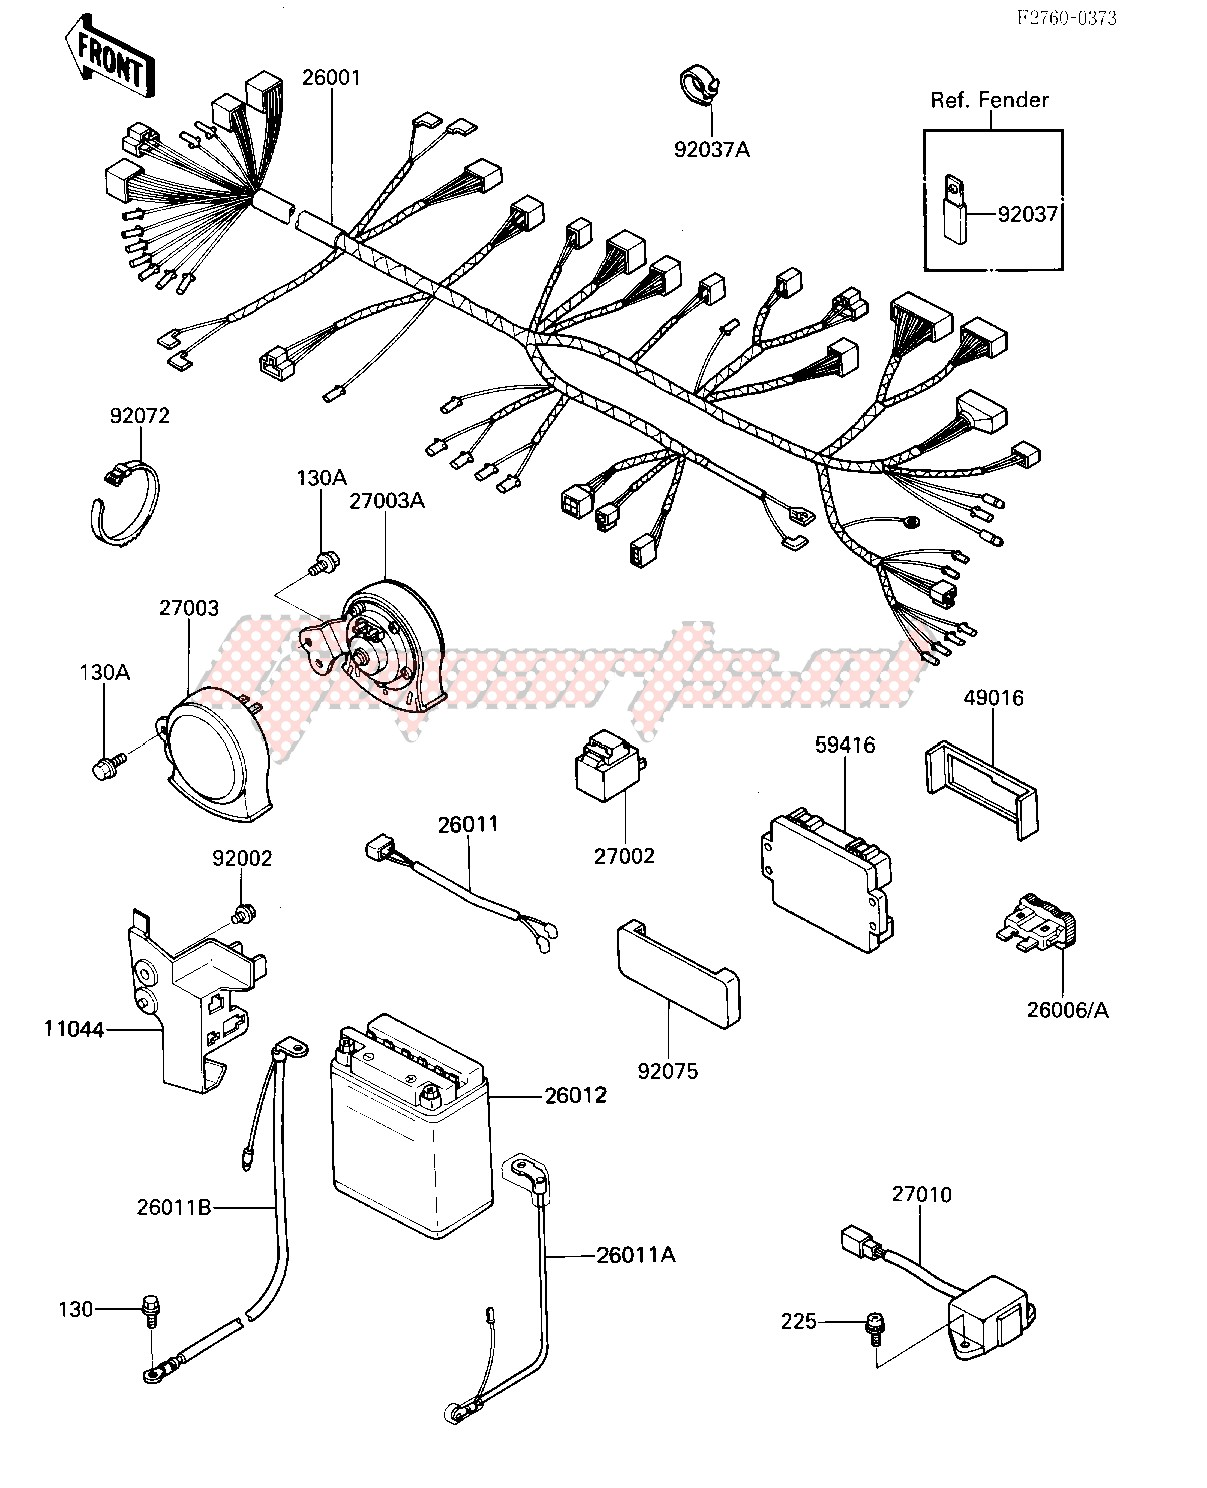 [DIAGRAM_5LK]  OEM CHASSIS ELECTRICAL EQUIPMENT - (Kawasaki [Motorcycle] ZL 1000 A [ZL1000  ELIMINATOR] (A1) / 1987) | Goparts | Zl1000 Wiring Diagram |  | Goparts